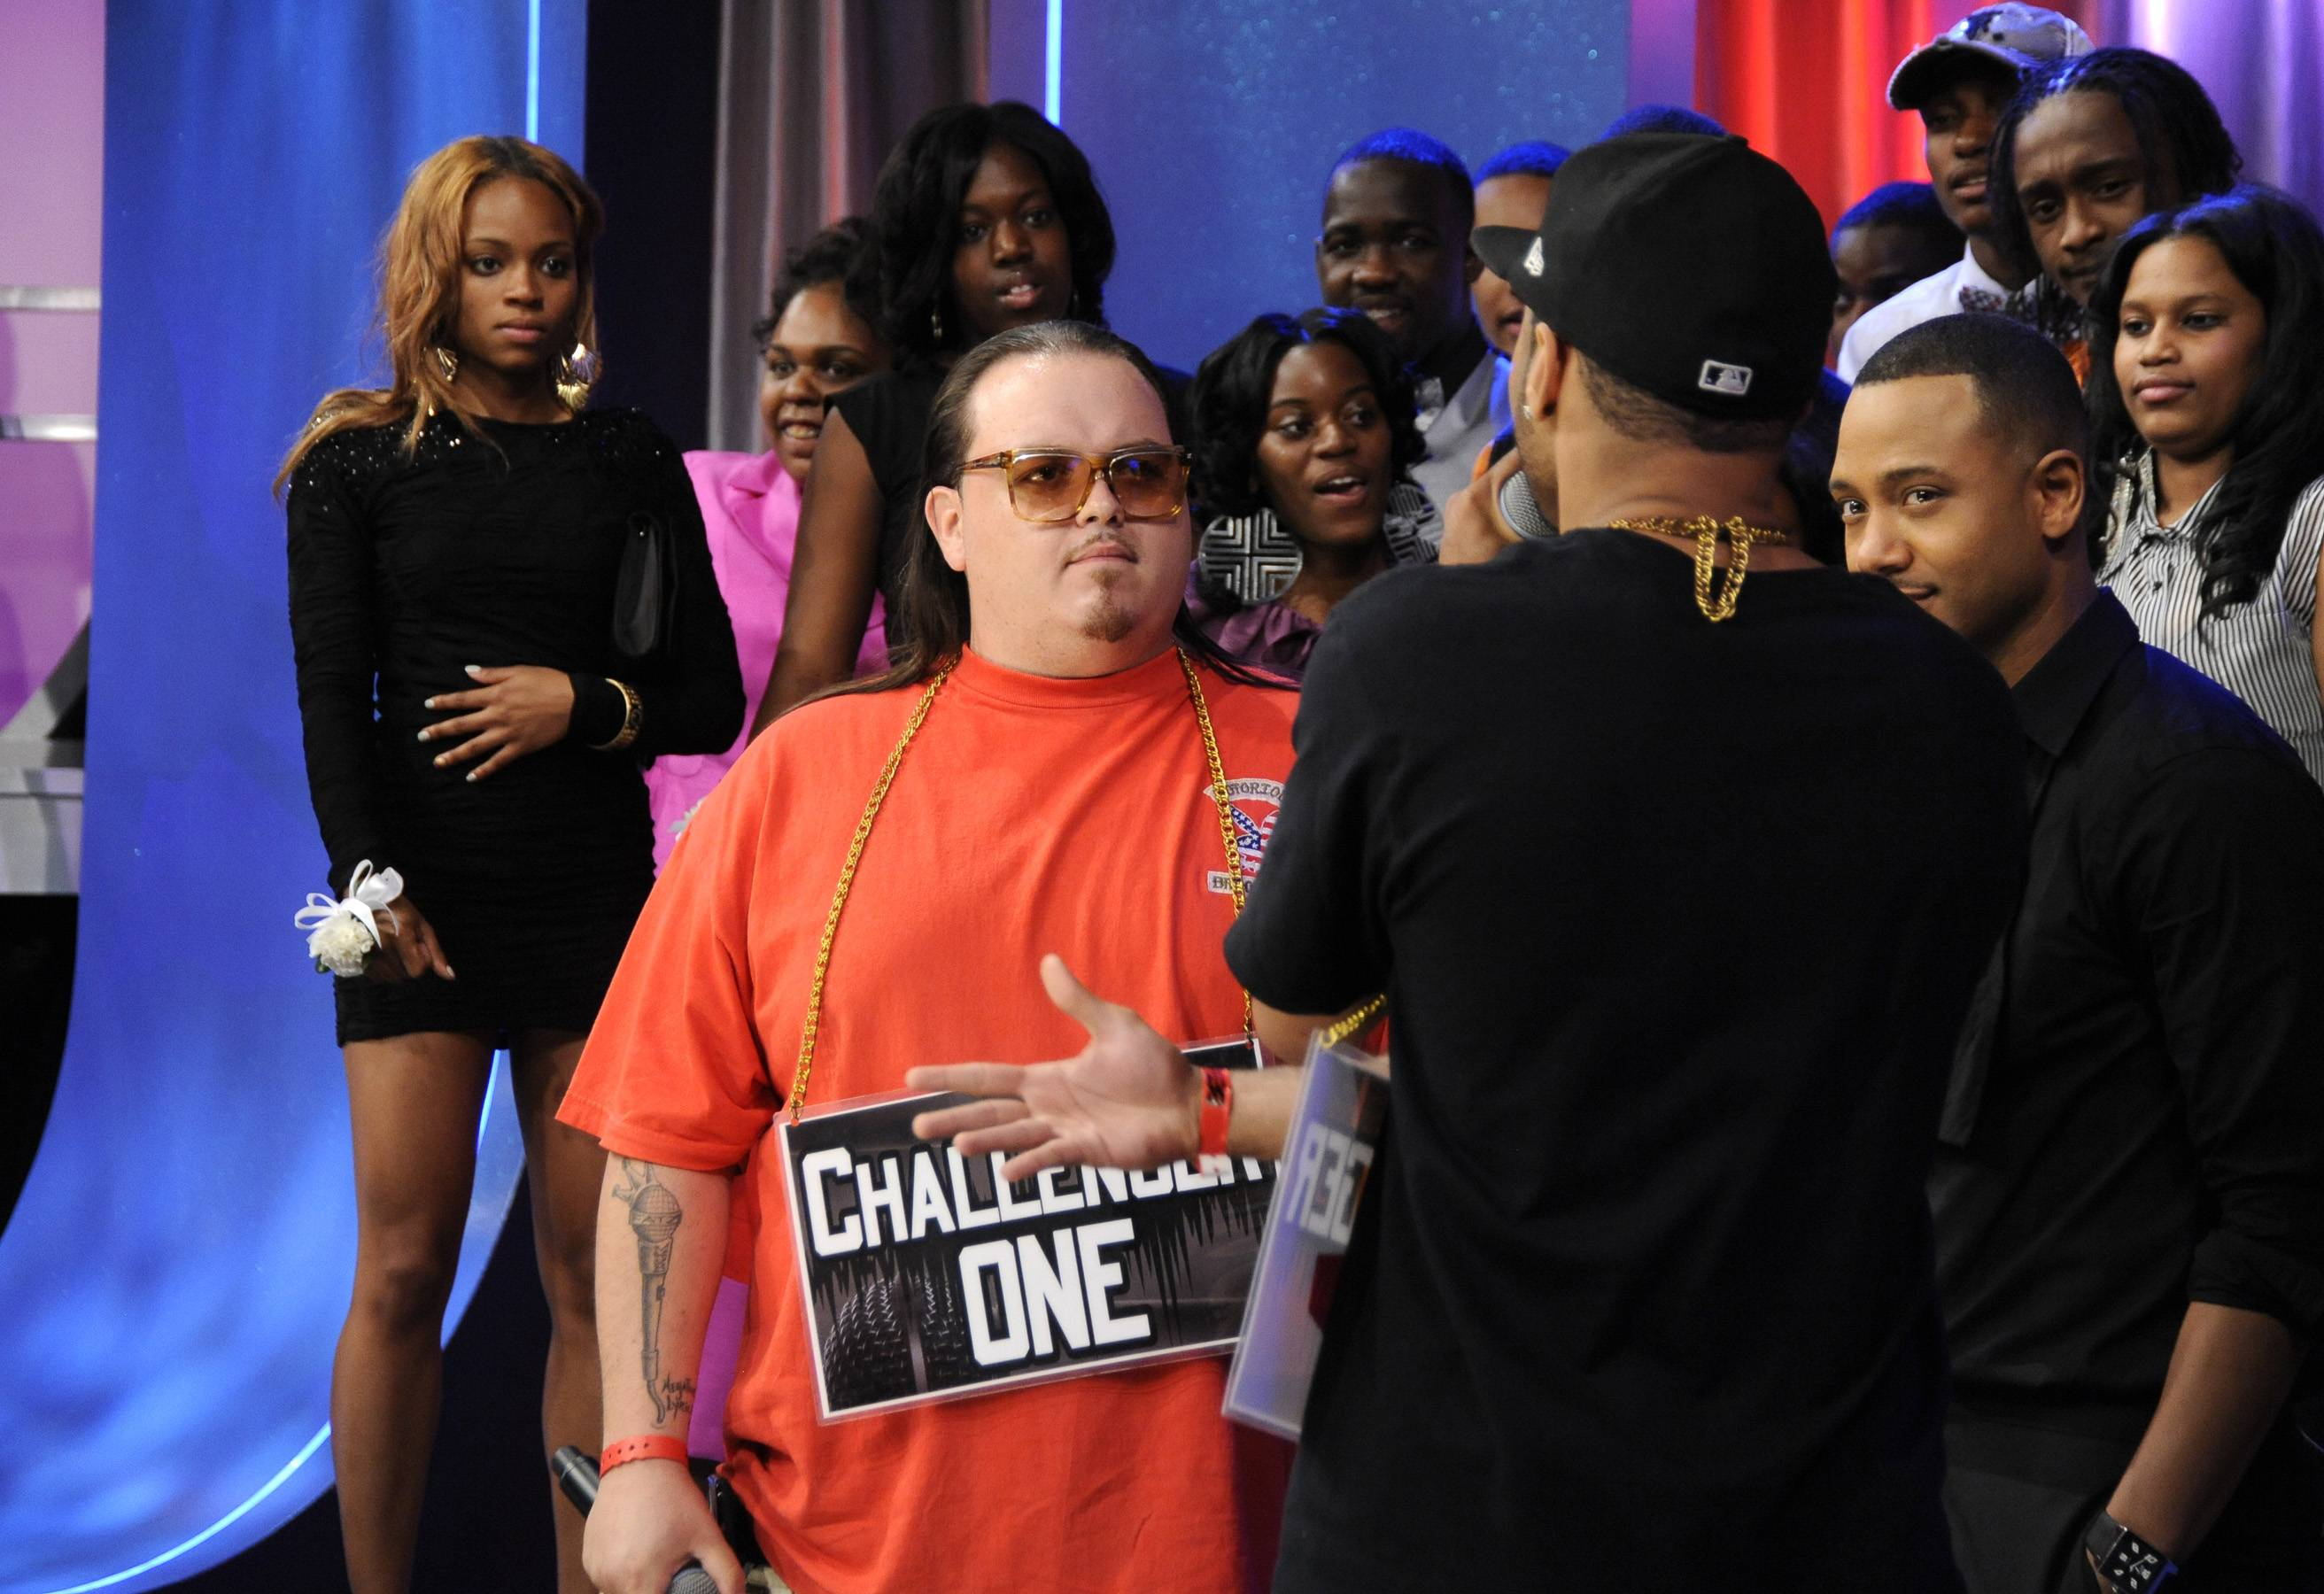 Go For It - Freestyle Friday contestants Interstate Fatz and Jayo the Beatslayer at 106 & Park, May 25, 2012. (Photo: John Ricard / BET)